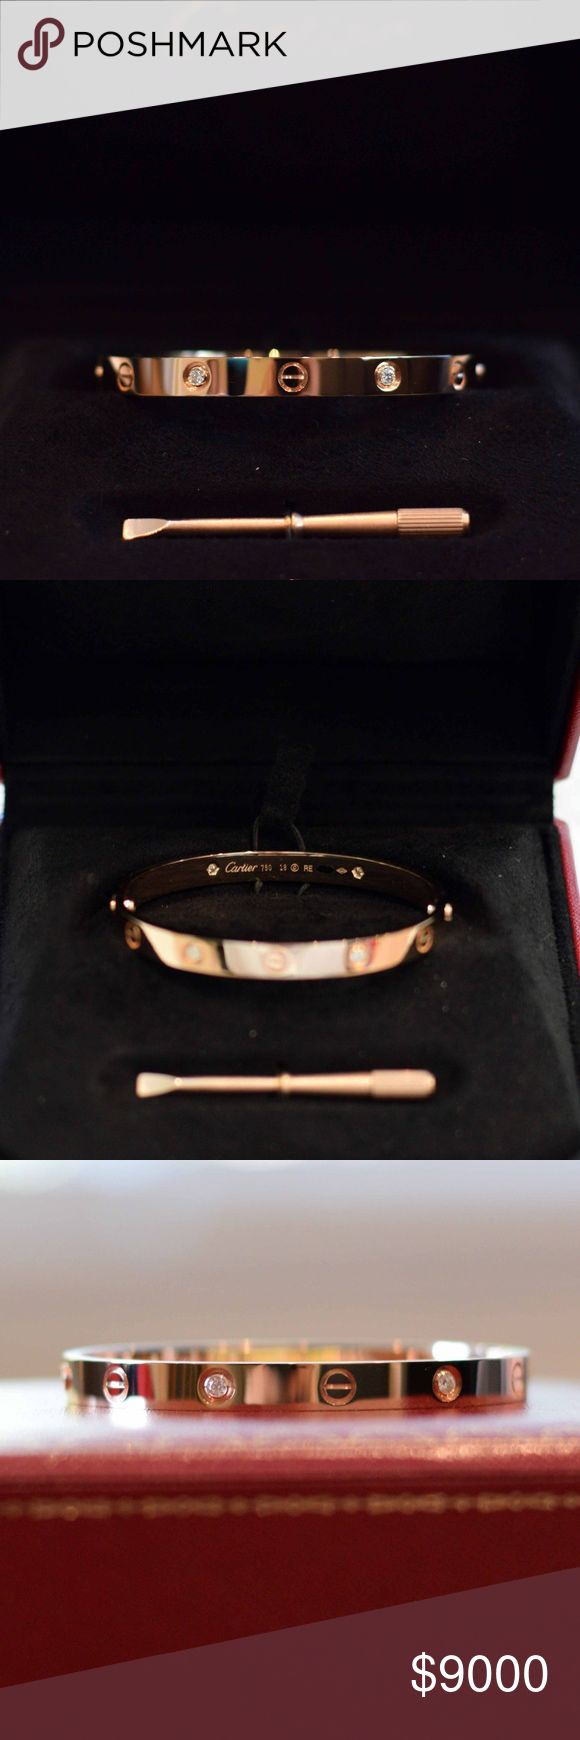 Auth Cartier Love Bracelet 18k Rose Gld 4 Diamonds 100% Authentic Cartier Love Bangle Bracelet - 18K Rose Gold - with 4 diamonds - Size 18.  Bracelet has been handled a few times - mainly for admiration, but most recently to photograph for this listing.  Selling thru Poshmark only. Please see below regarding sale price.  I consider this bracelet new cause it has never been worn, although there may a be a few hairline scratches from handling.  Comes with original Cartier boxes, screwdriver…